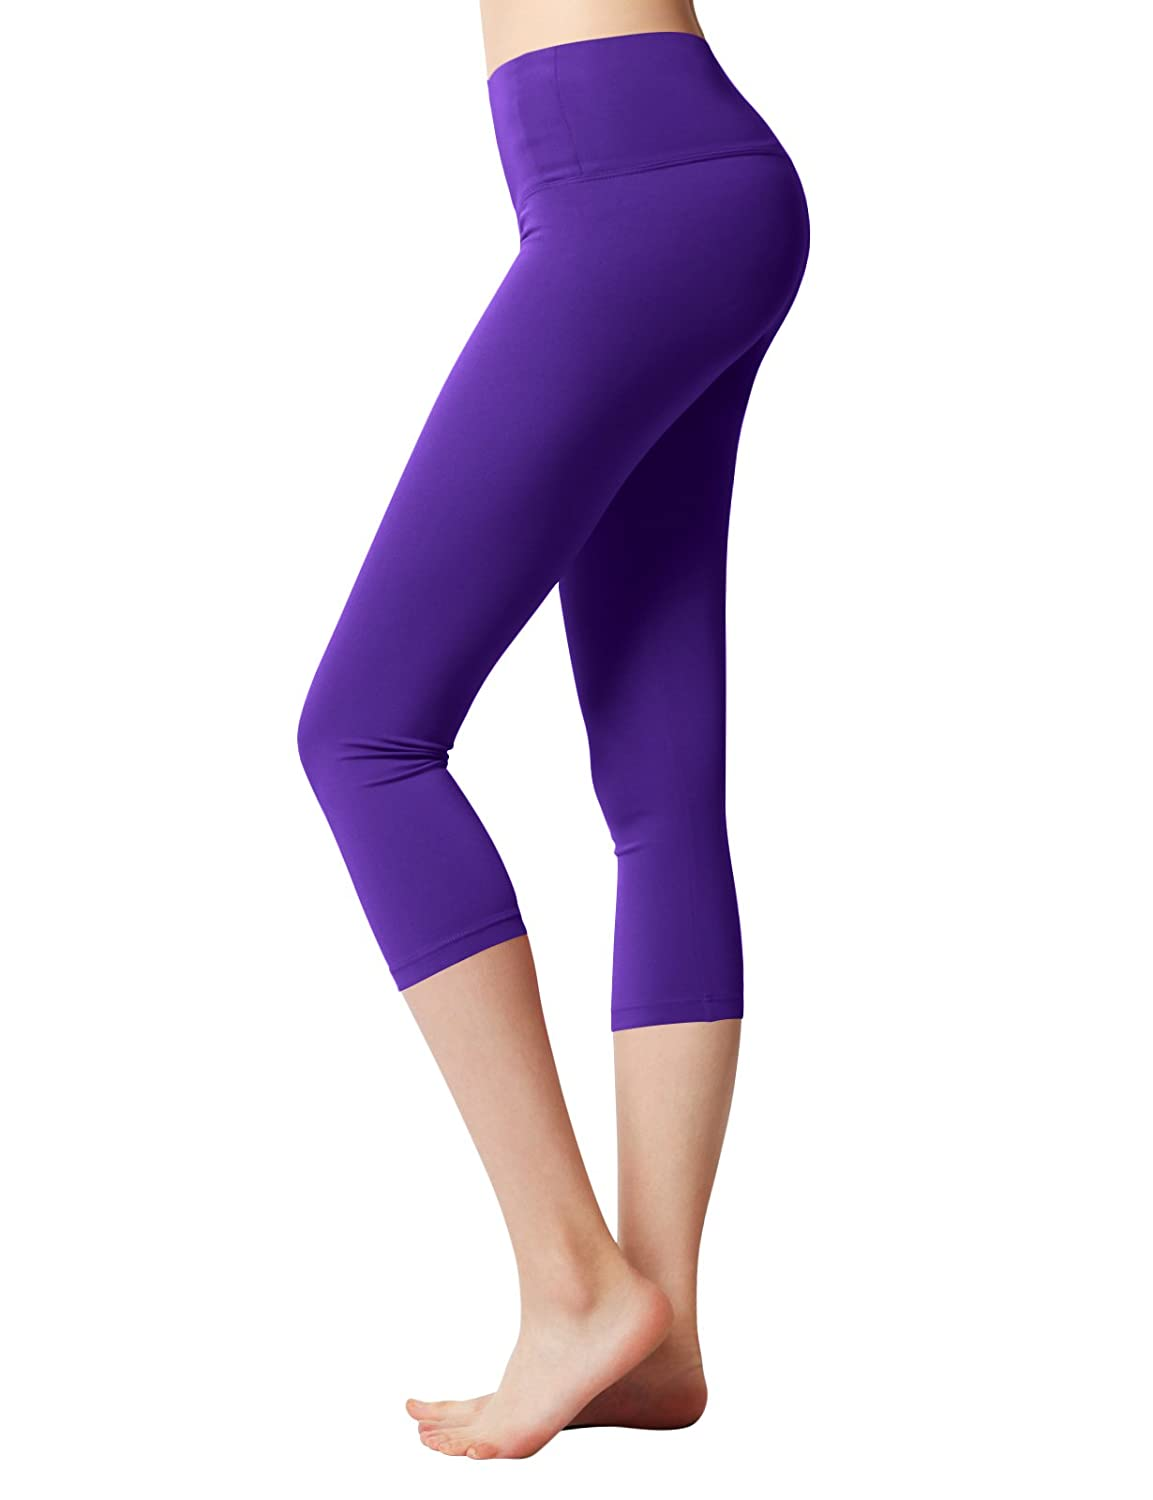 ACTICLO Yoga Pants High Waist Tummy Control Sports Running Workout Power Flex Leggings Hidden Pocket Plus size(XS-3XL)